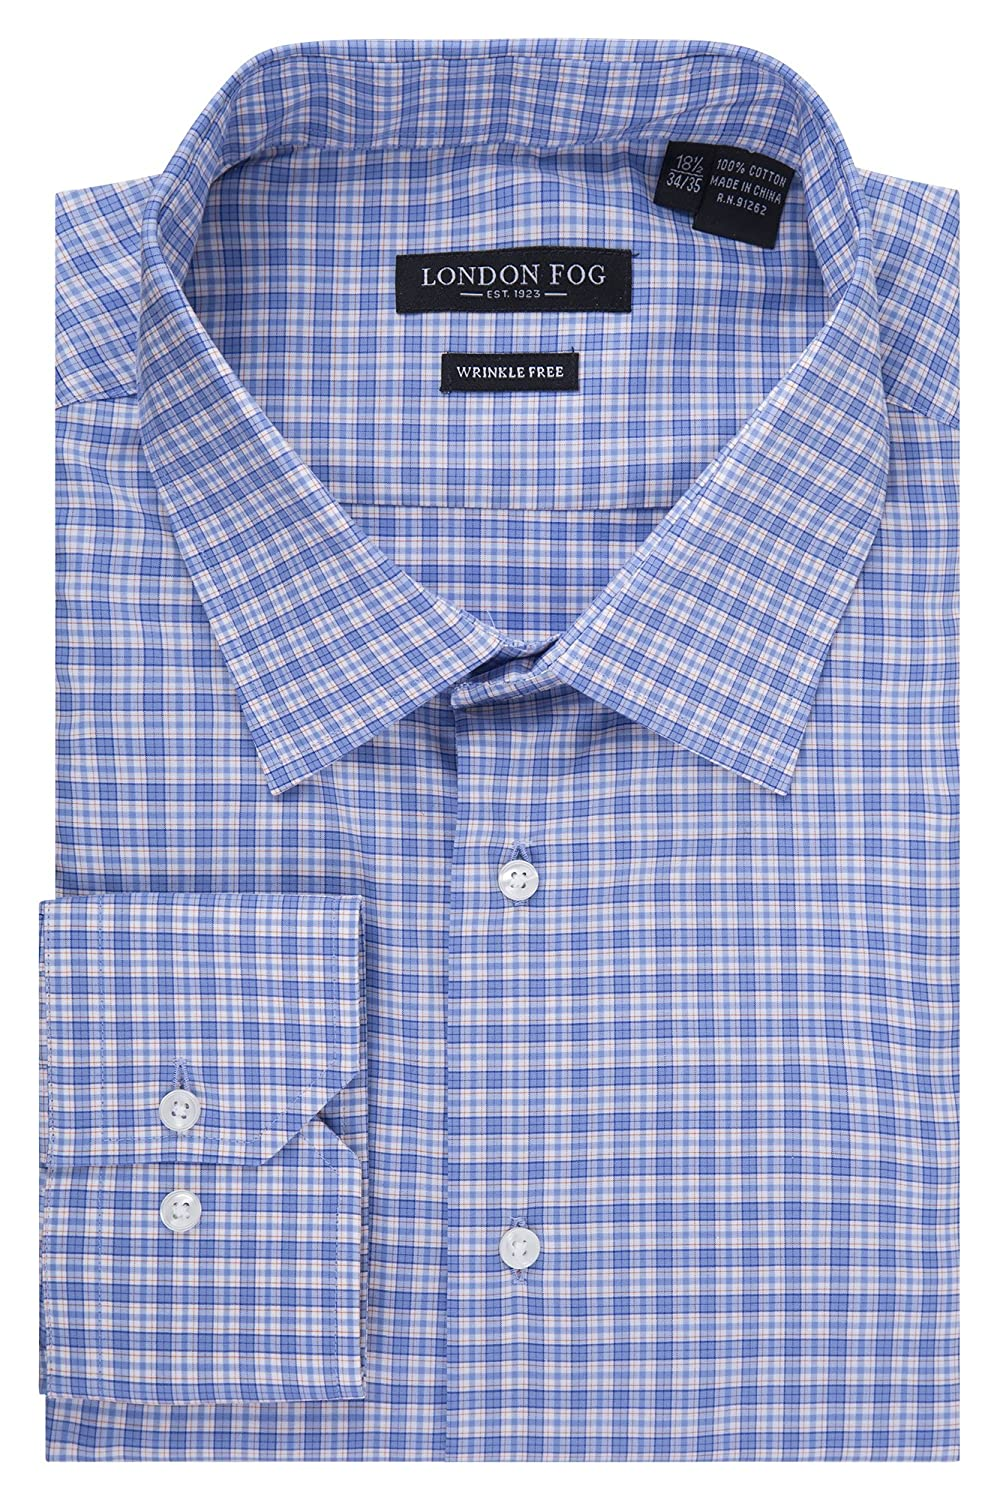 Symbol Of The Brand Slim Fit Blue Plaid Herringbone Spread Collar Wrinkle Freee Cotton Dress Shirt Shirts